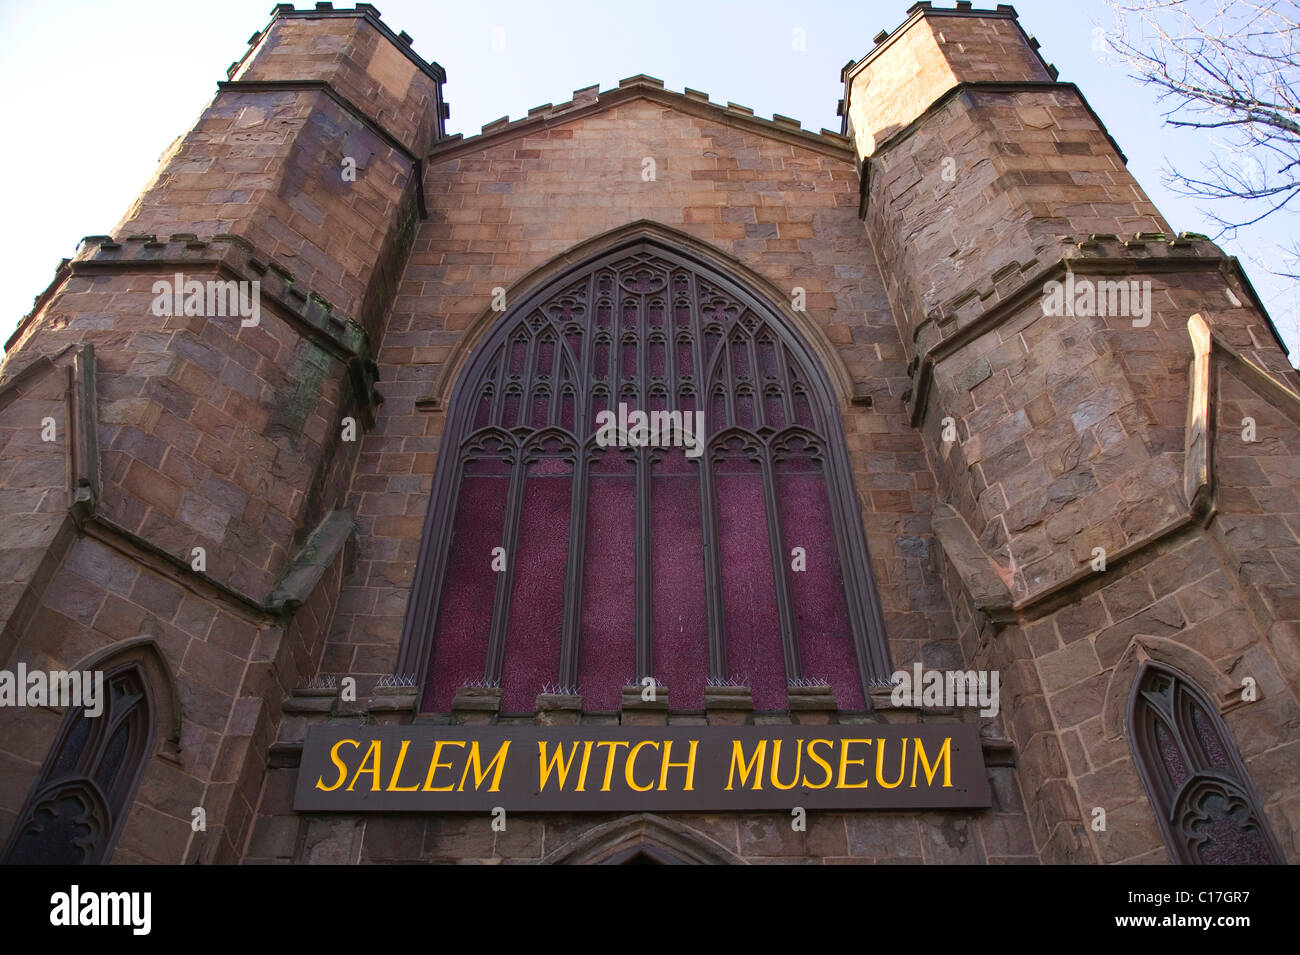 Salem Witches Stock Photos & Salem Witches Stock Images ...